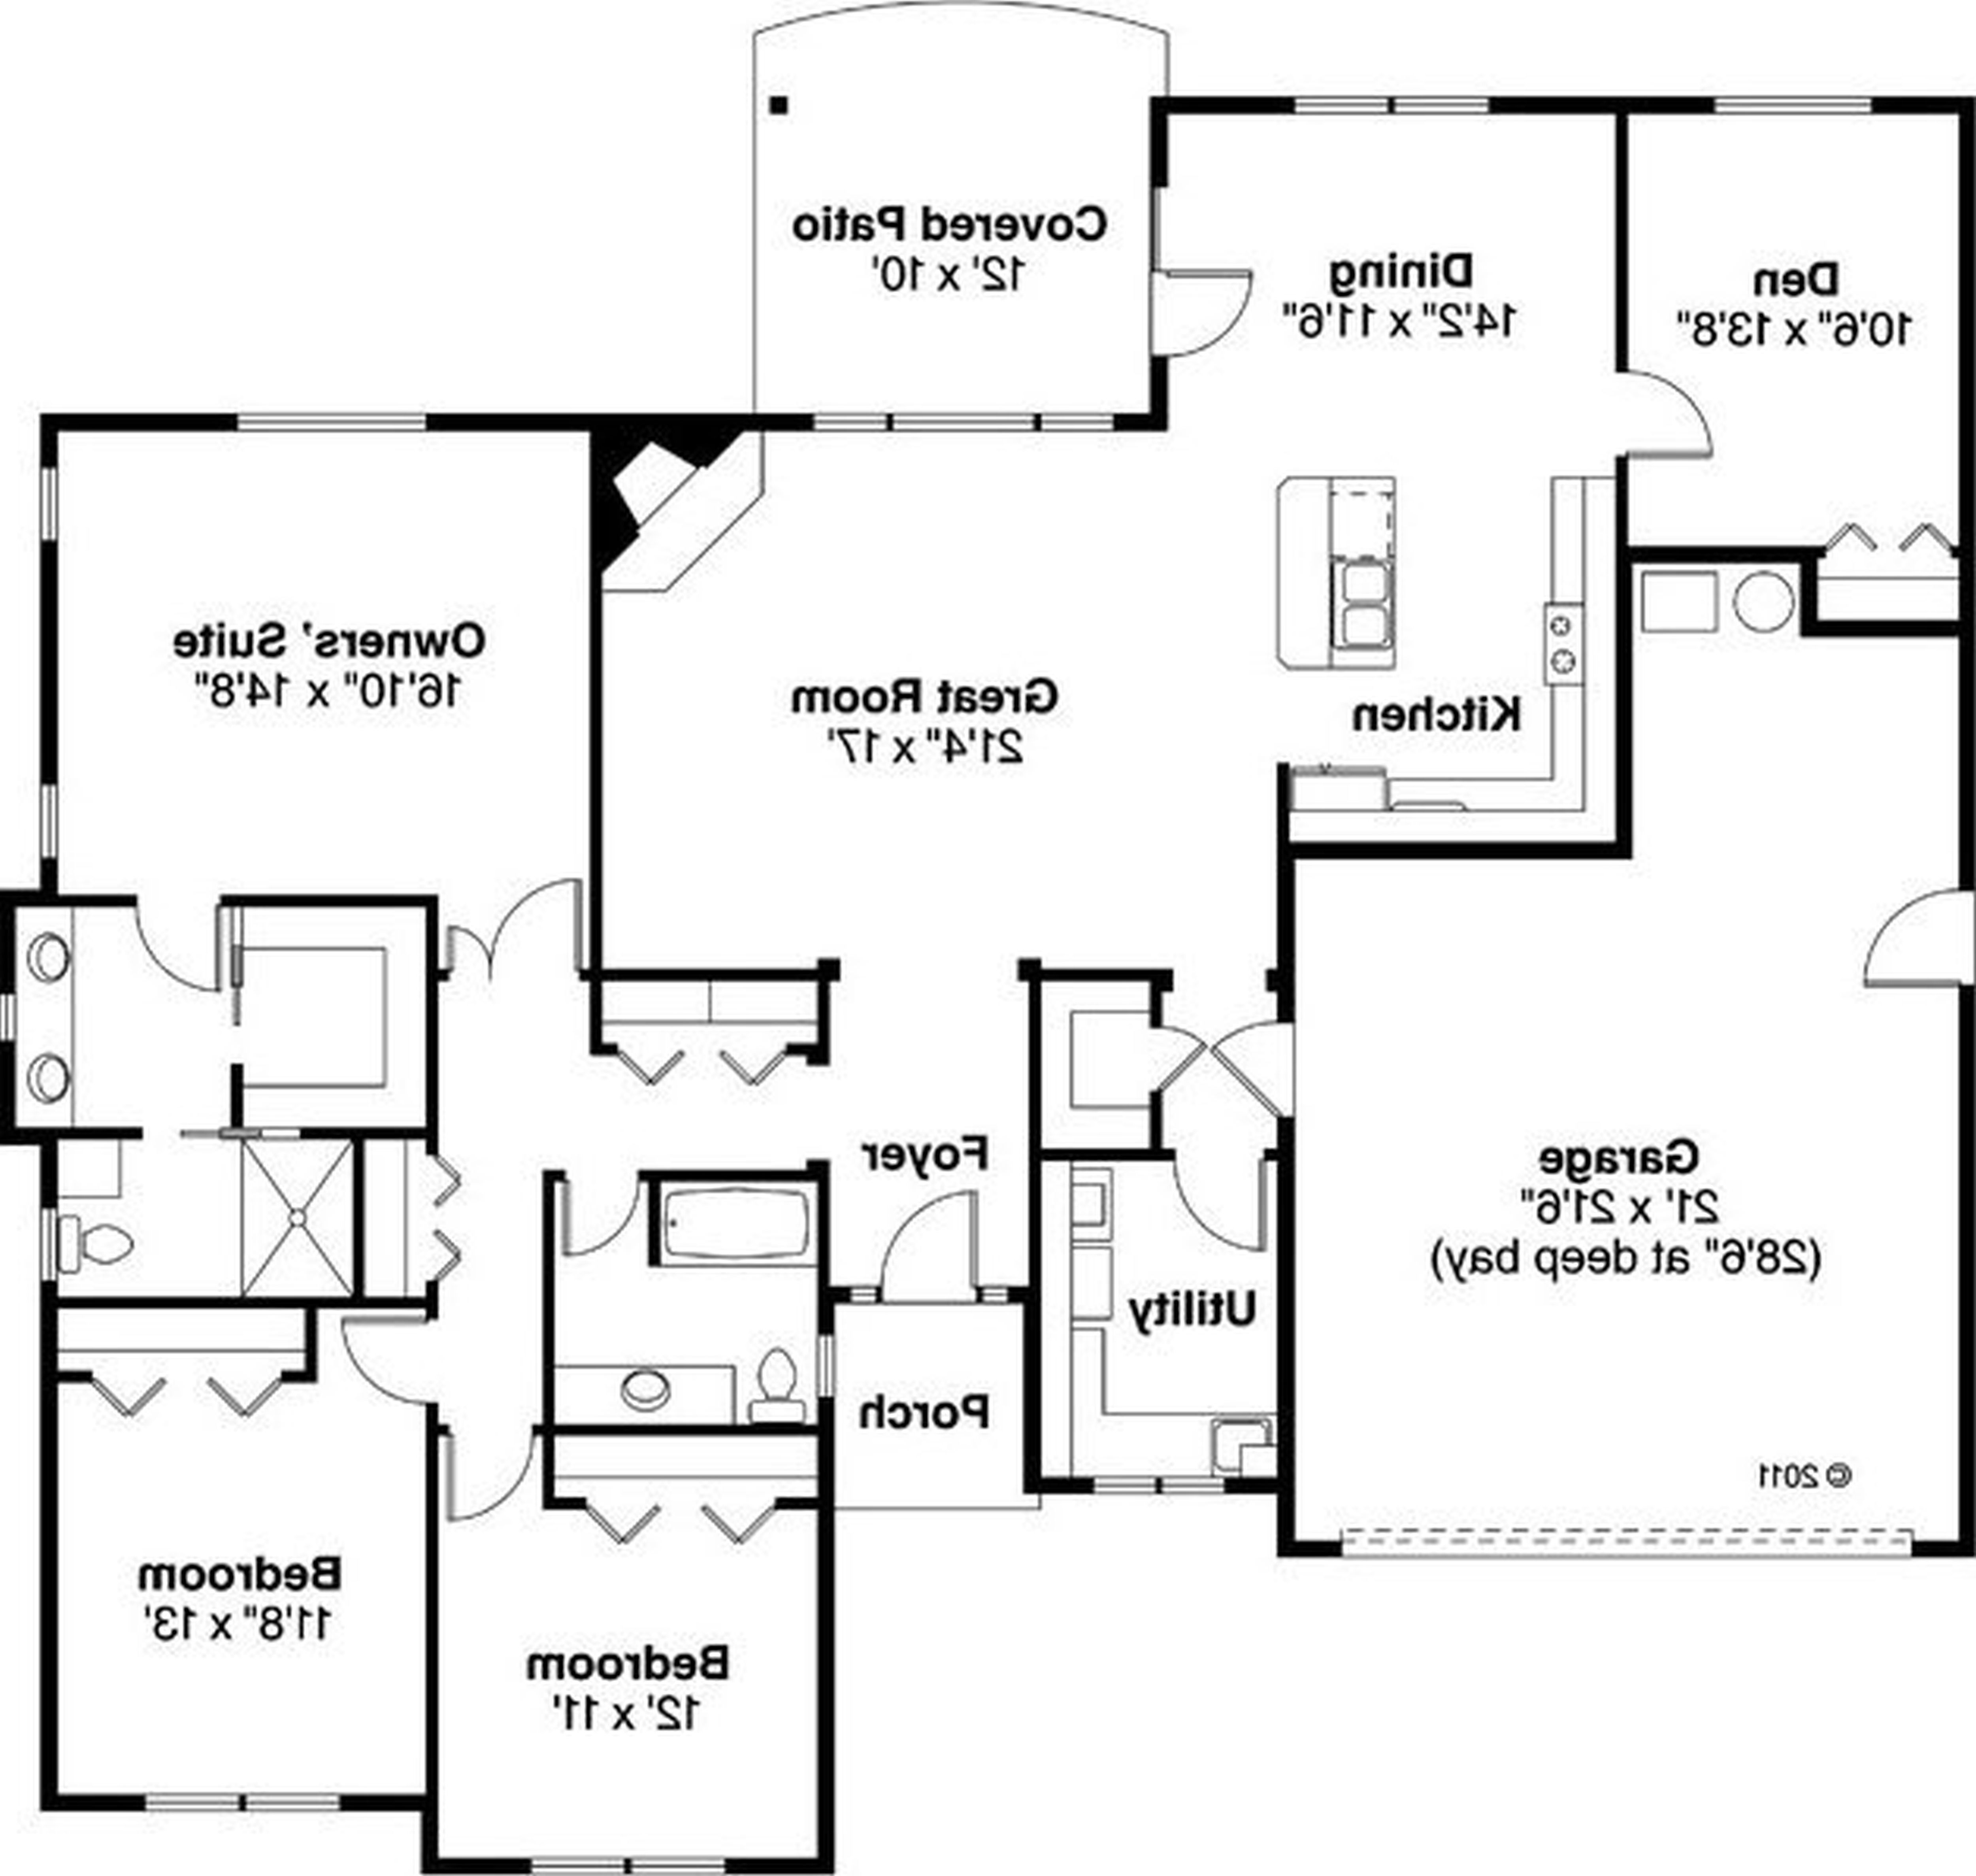 Marvelous House Plans Wonderful Simple House Plans With Dimensions Modern Style Home Design Id Bungalow House Floor Plans Free House Design House Floor Plans